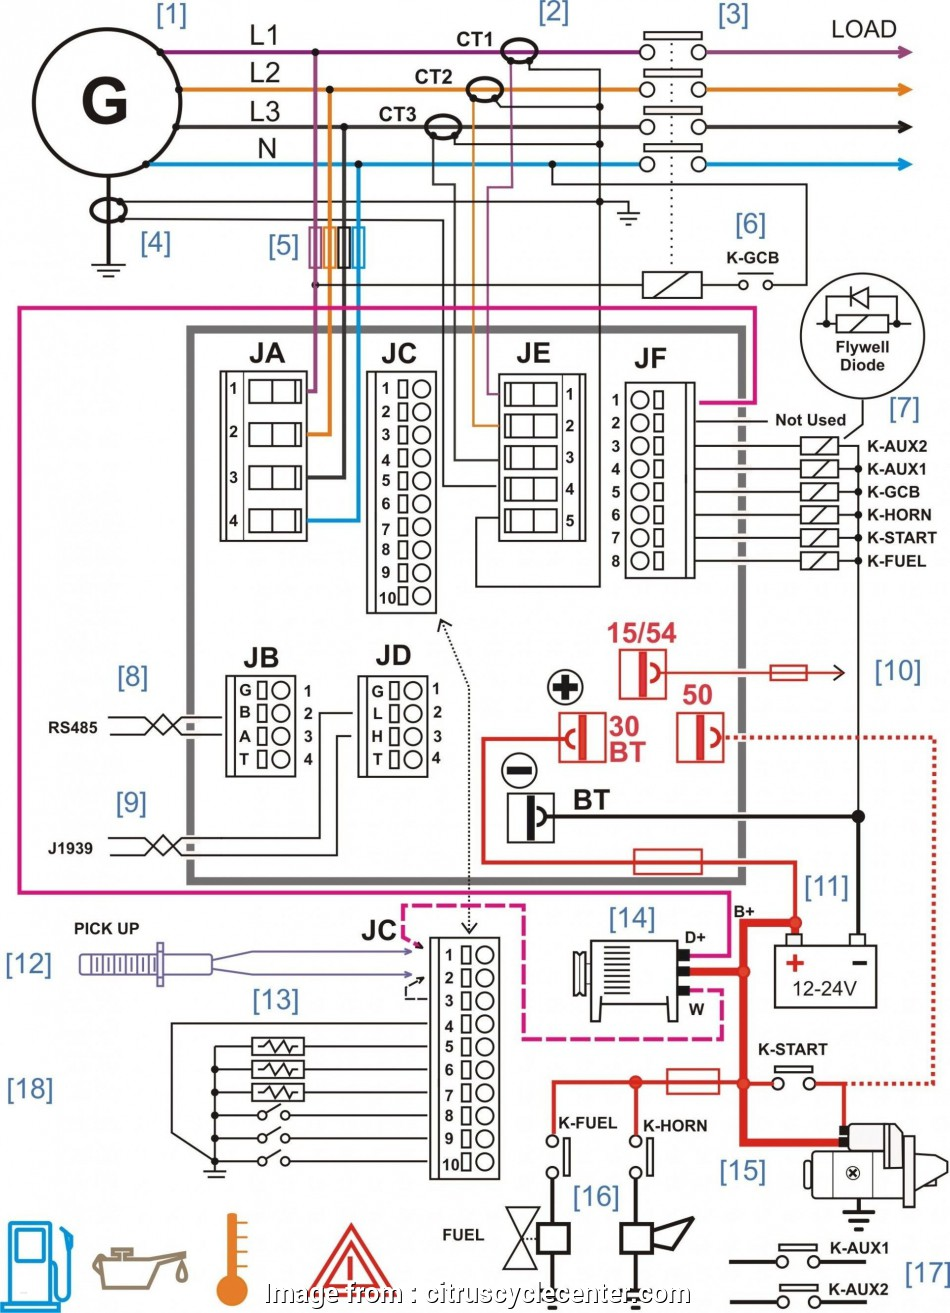 hight resolution of electrical wiring diagram cad electrical wiring diagram symbols list cad wiring diagram symbols electrical